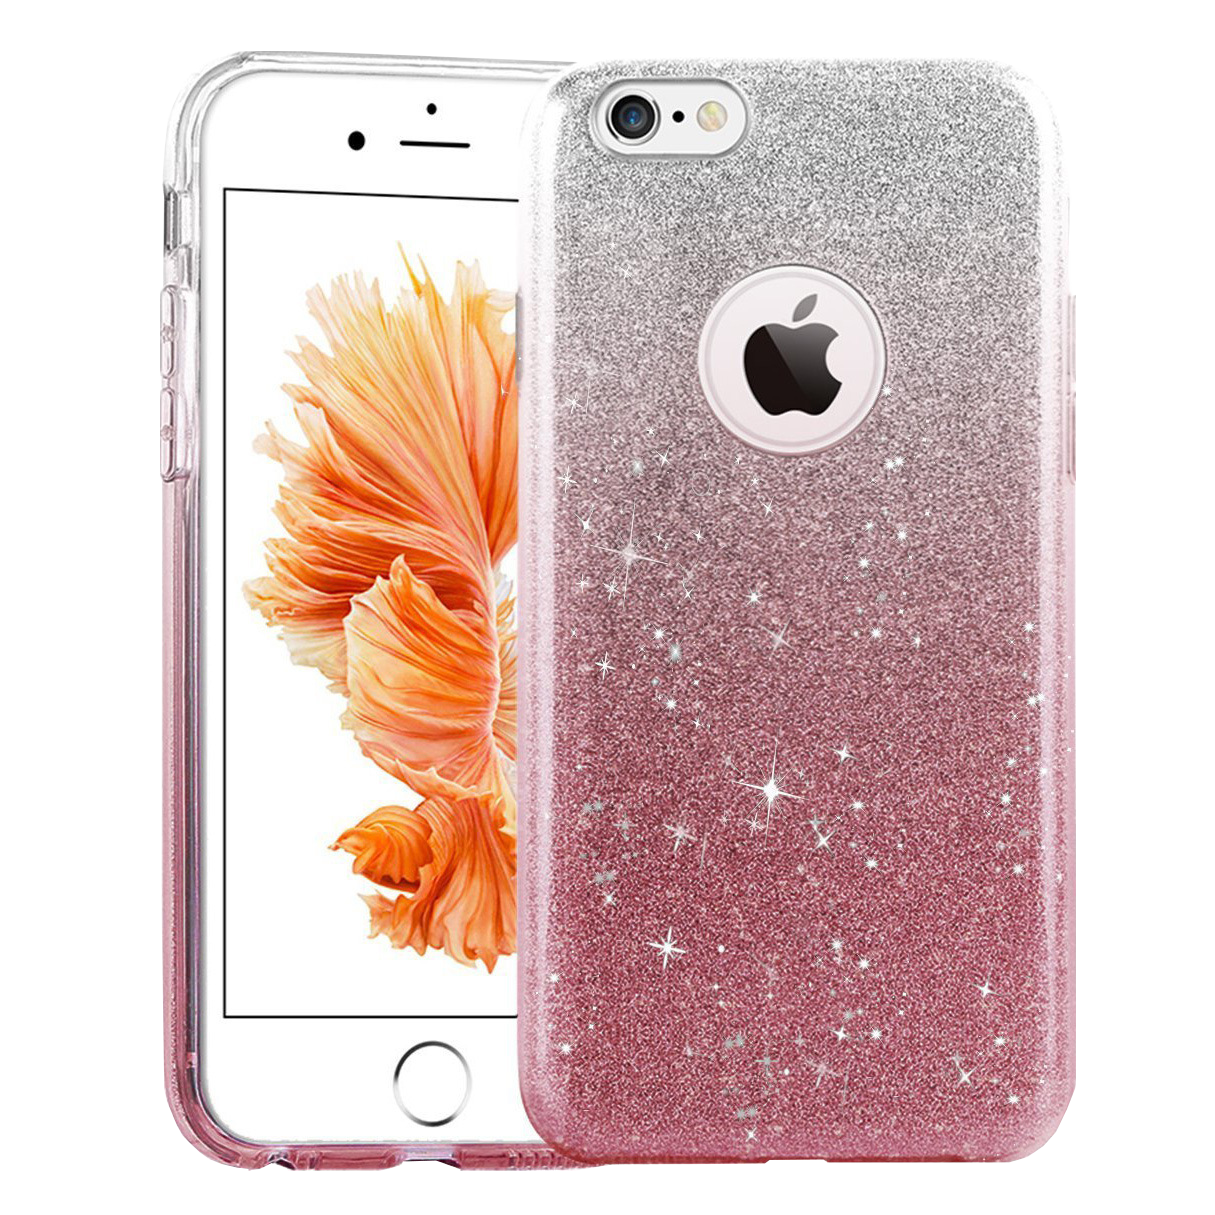 iphone 5s hoesjes cute